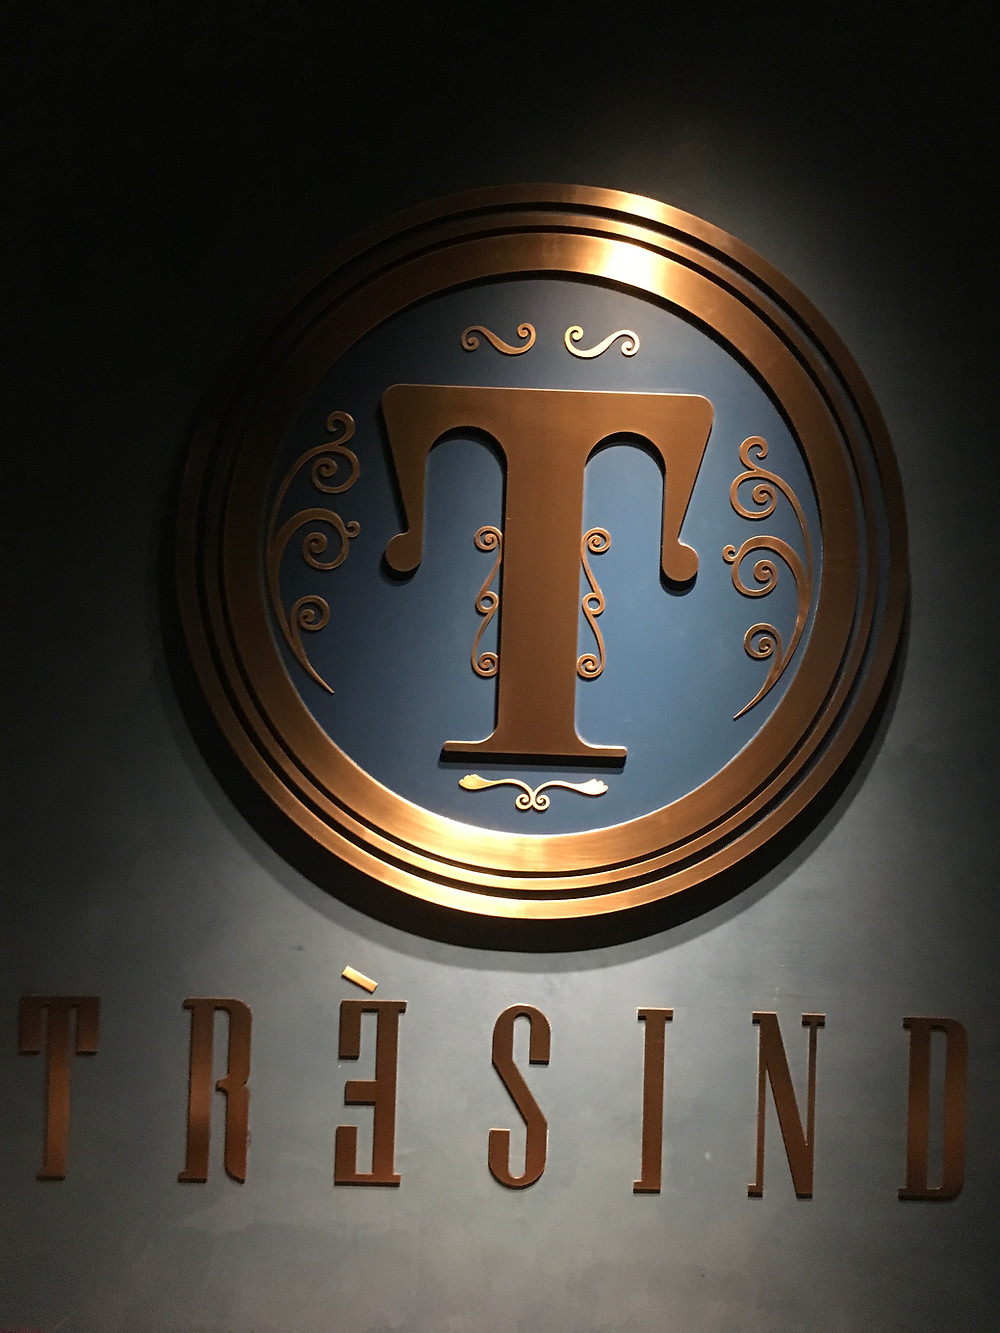 Tresind Restaurant in Dubai, UAE